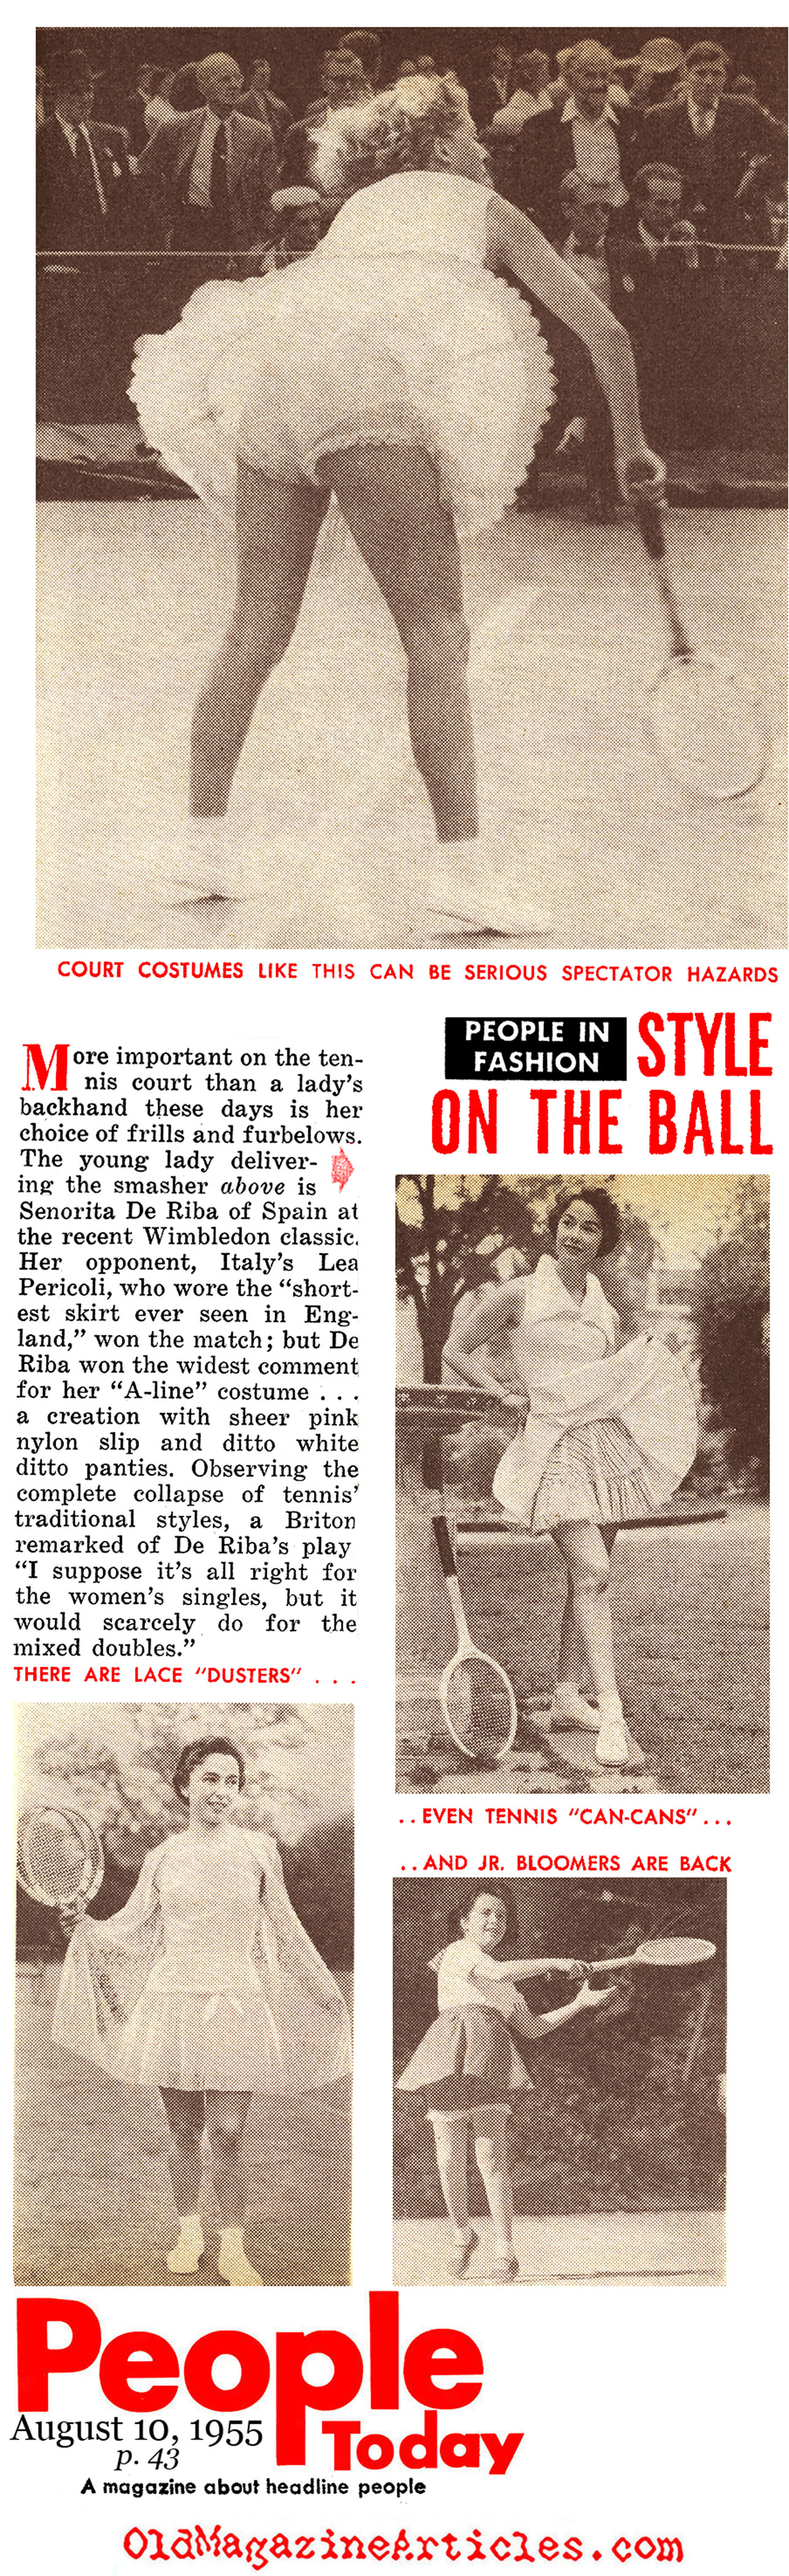 Tennis Skirts of the Mid-Fifties (People Today Magazine, 1955)